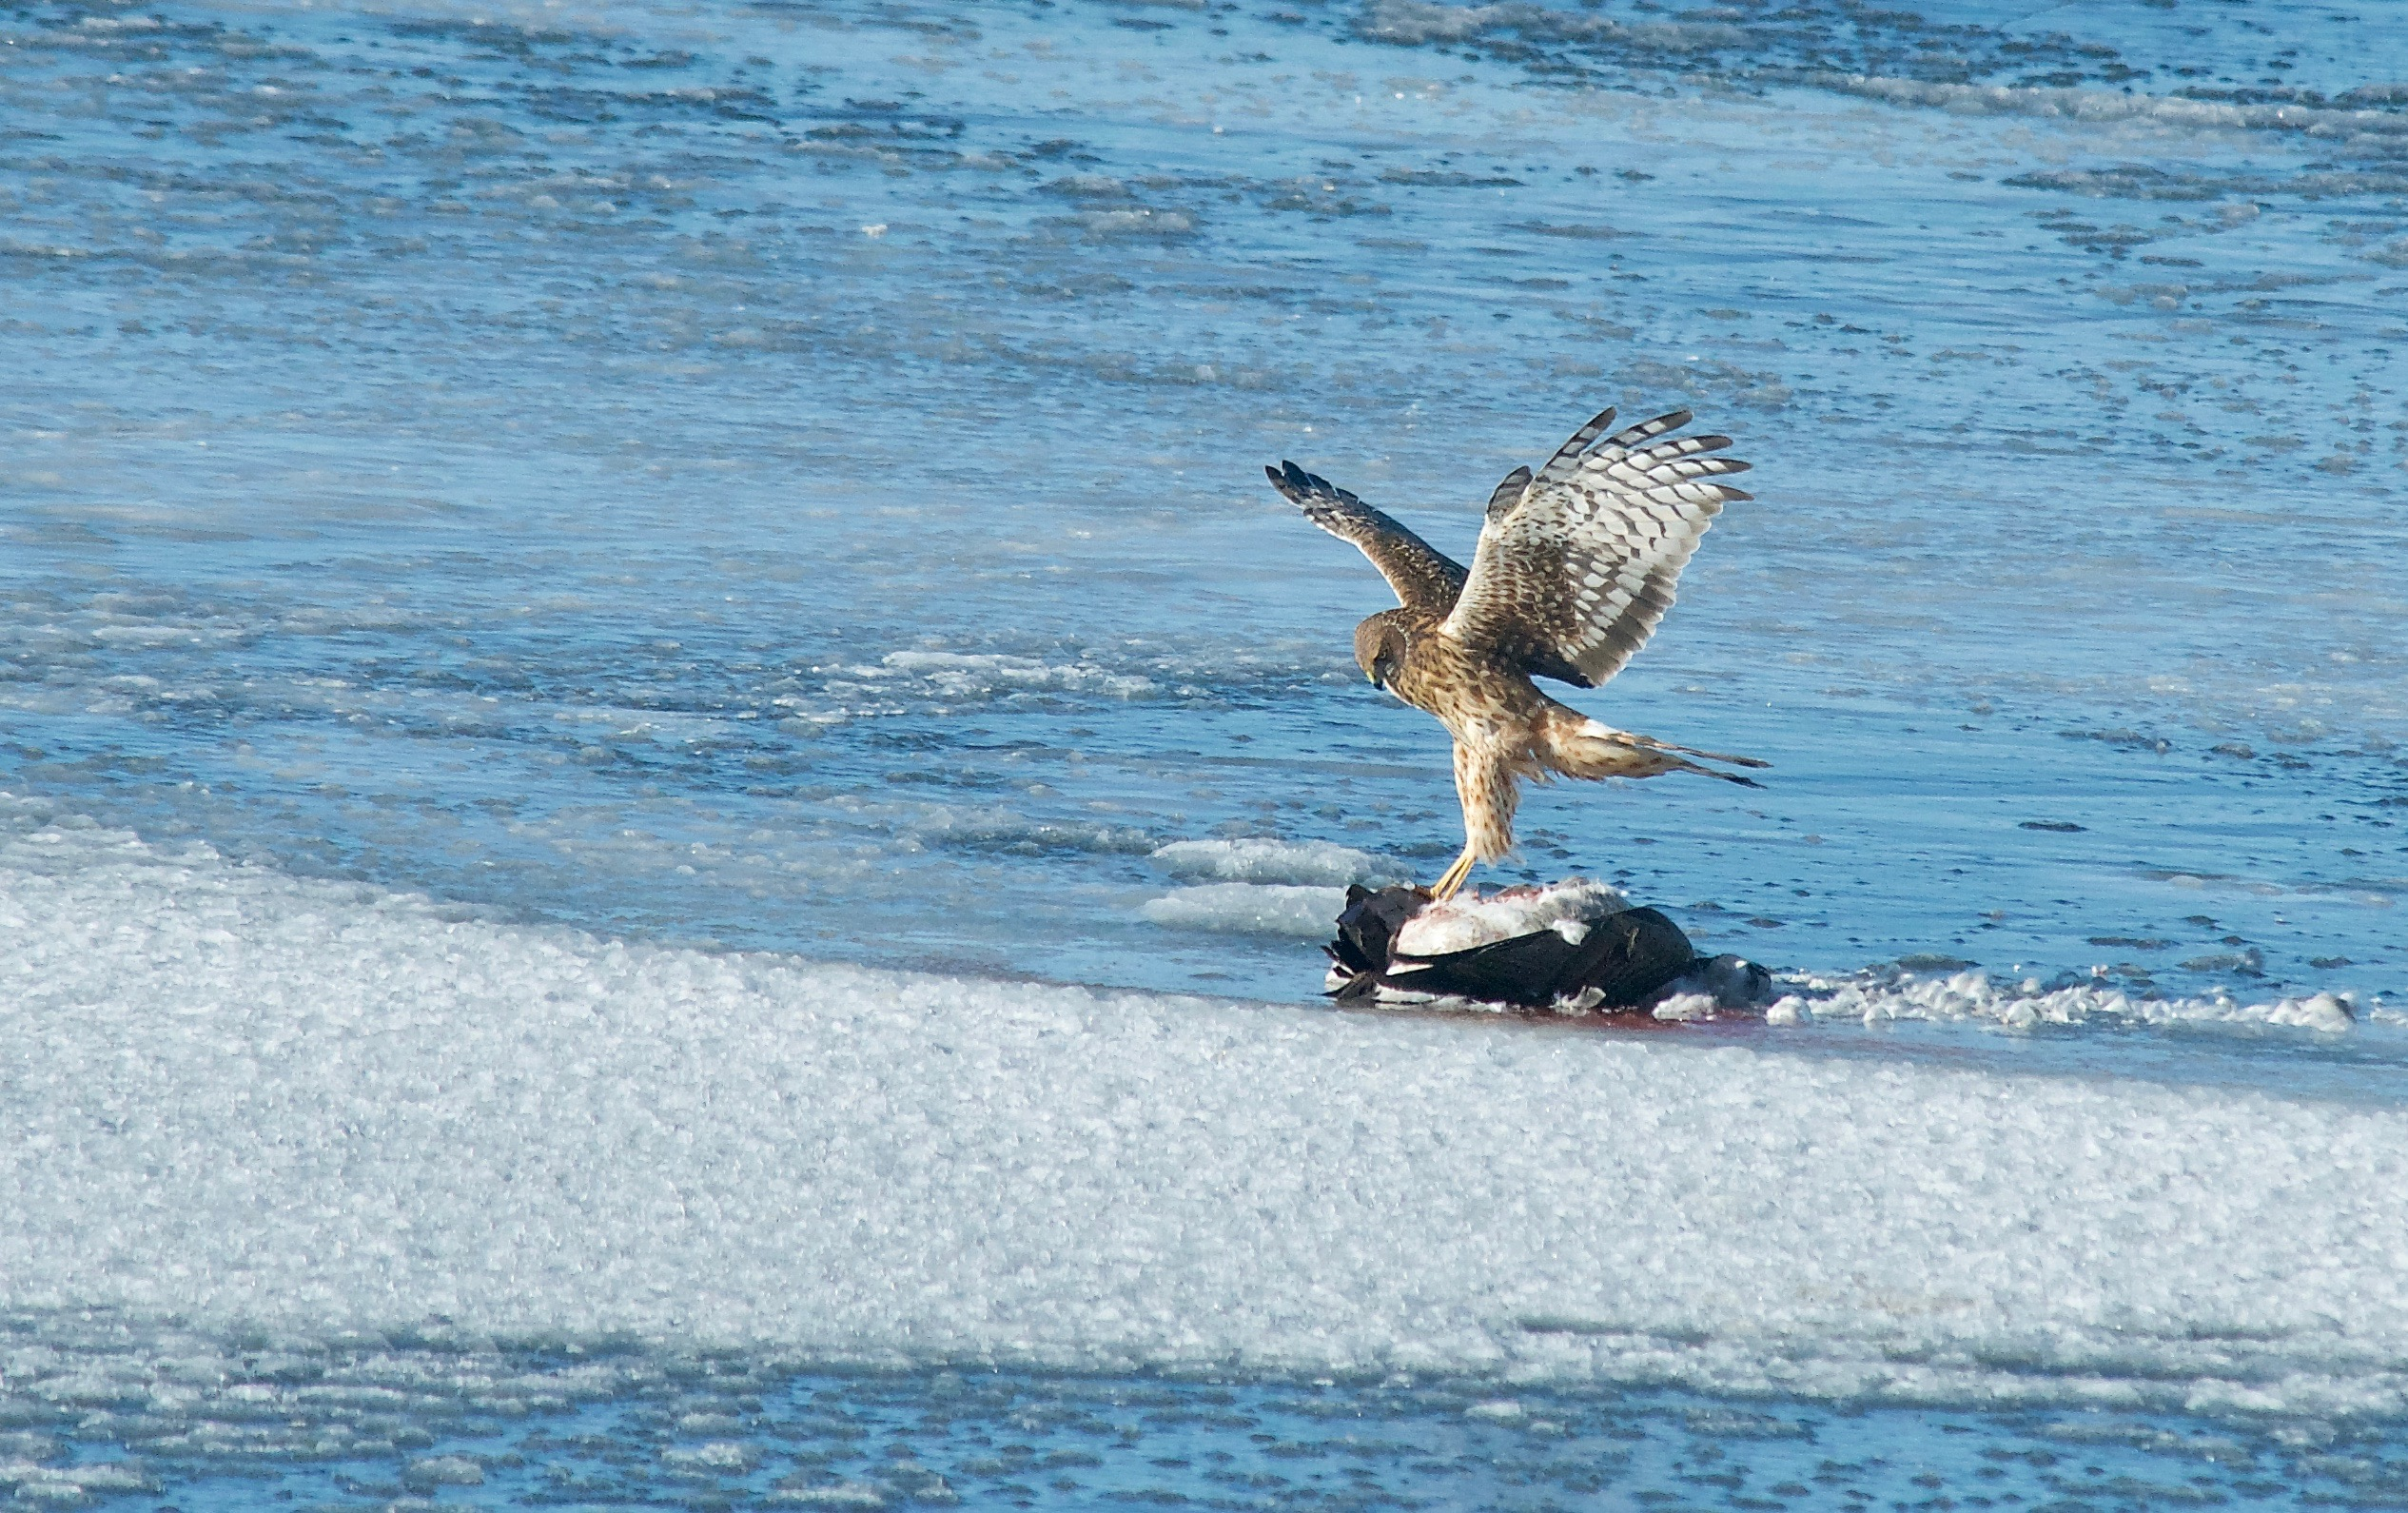 Female Northern Harrier Scavanging on a Goose